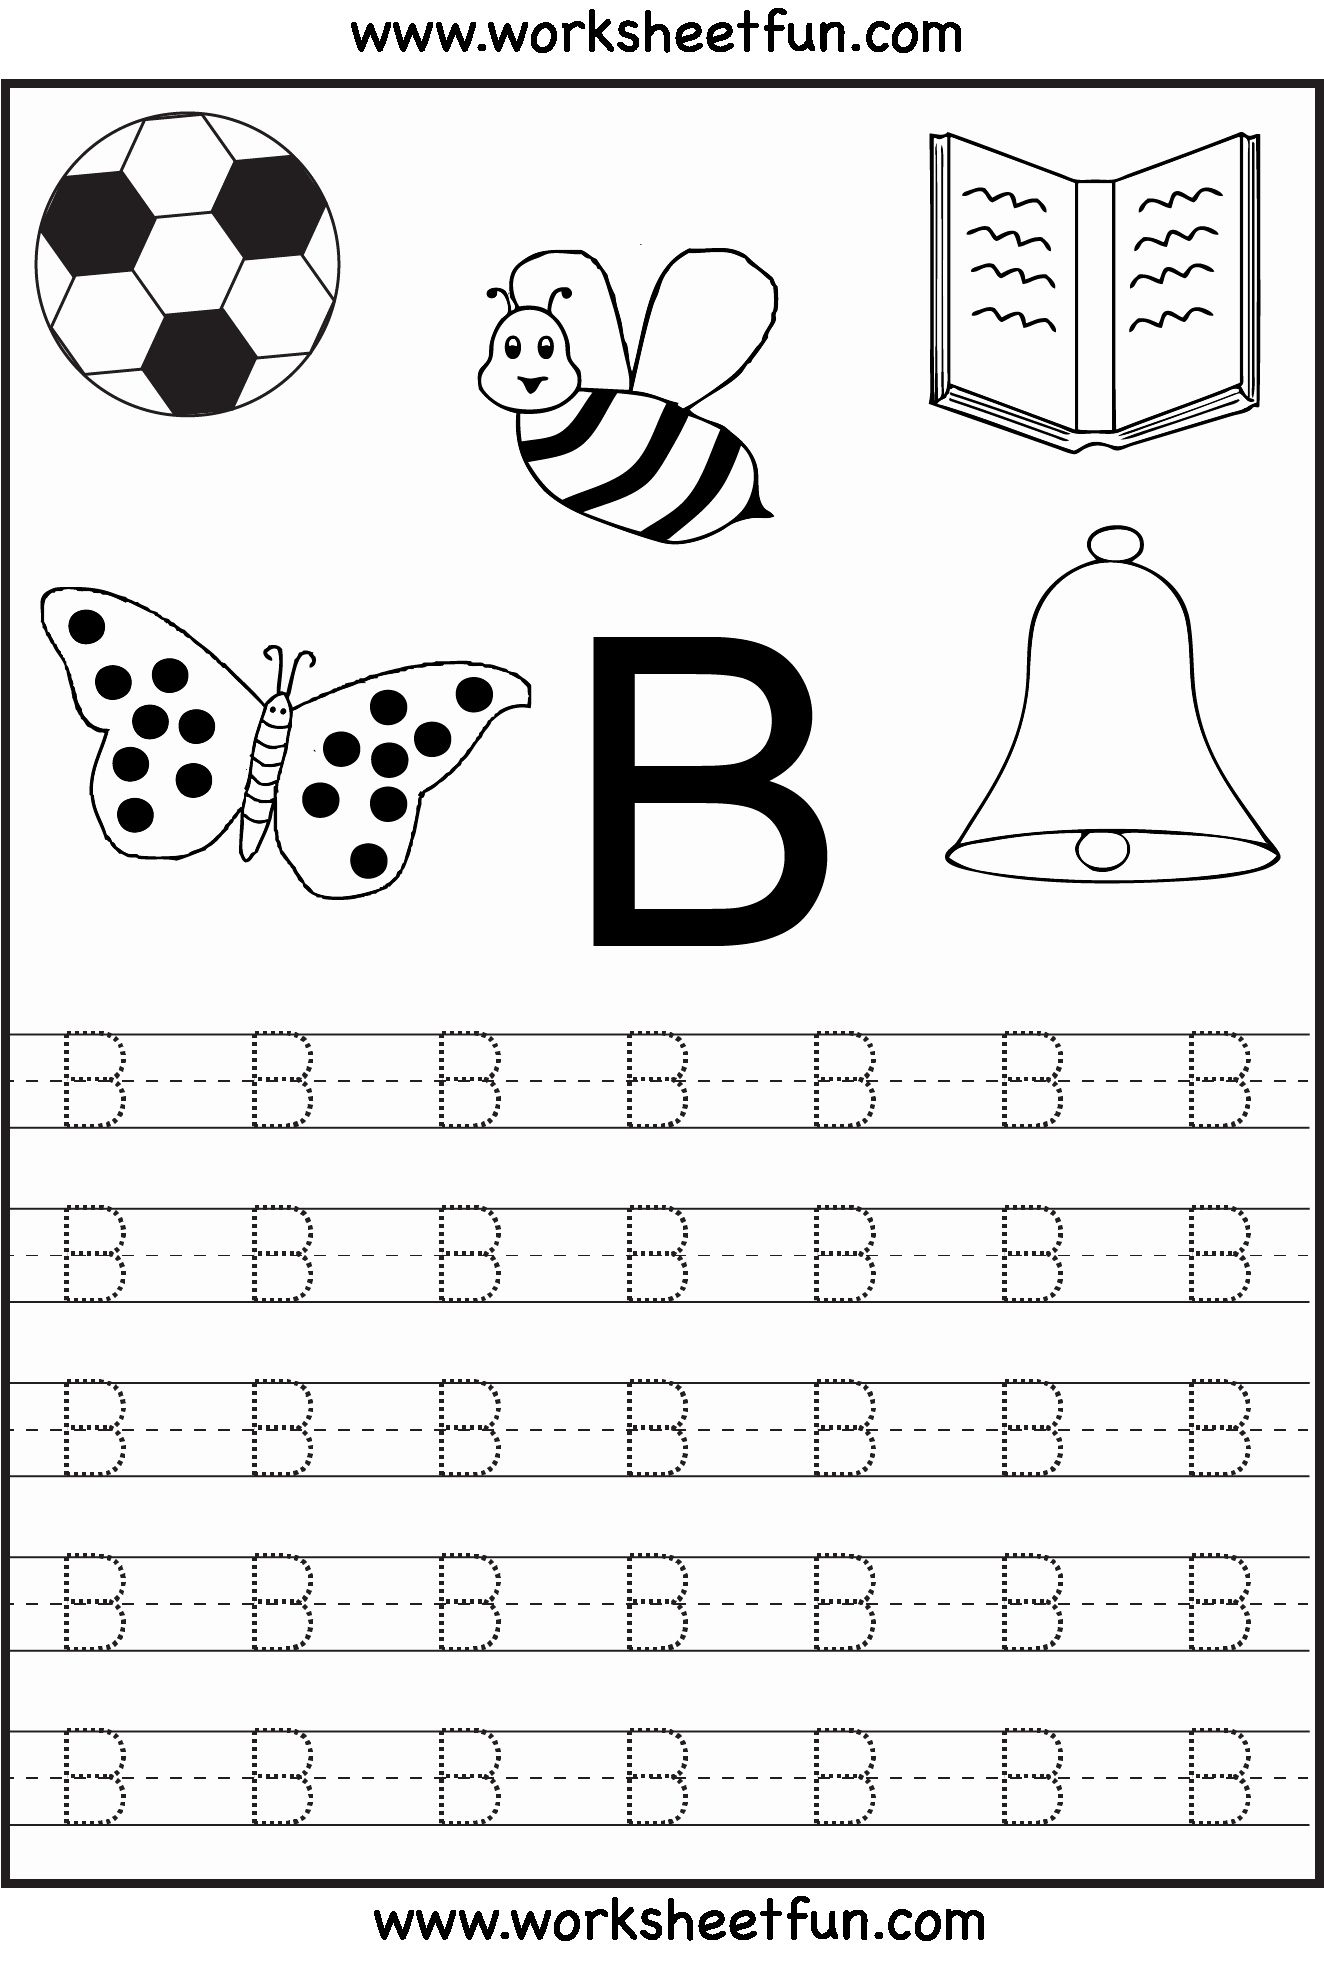 Alphabet Coloring Worksheets A-Z Pdf Luxury Free Printable intended for Alphabet Worksheets A Z With Pictures